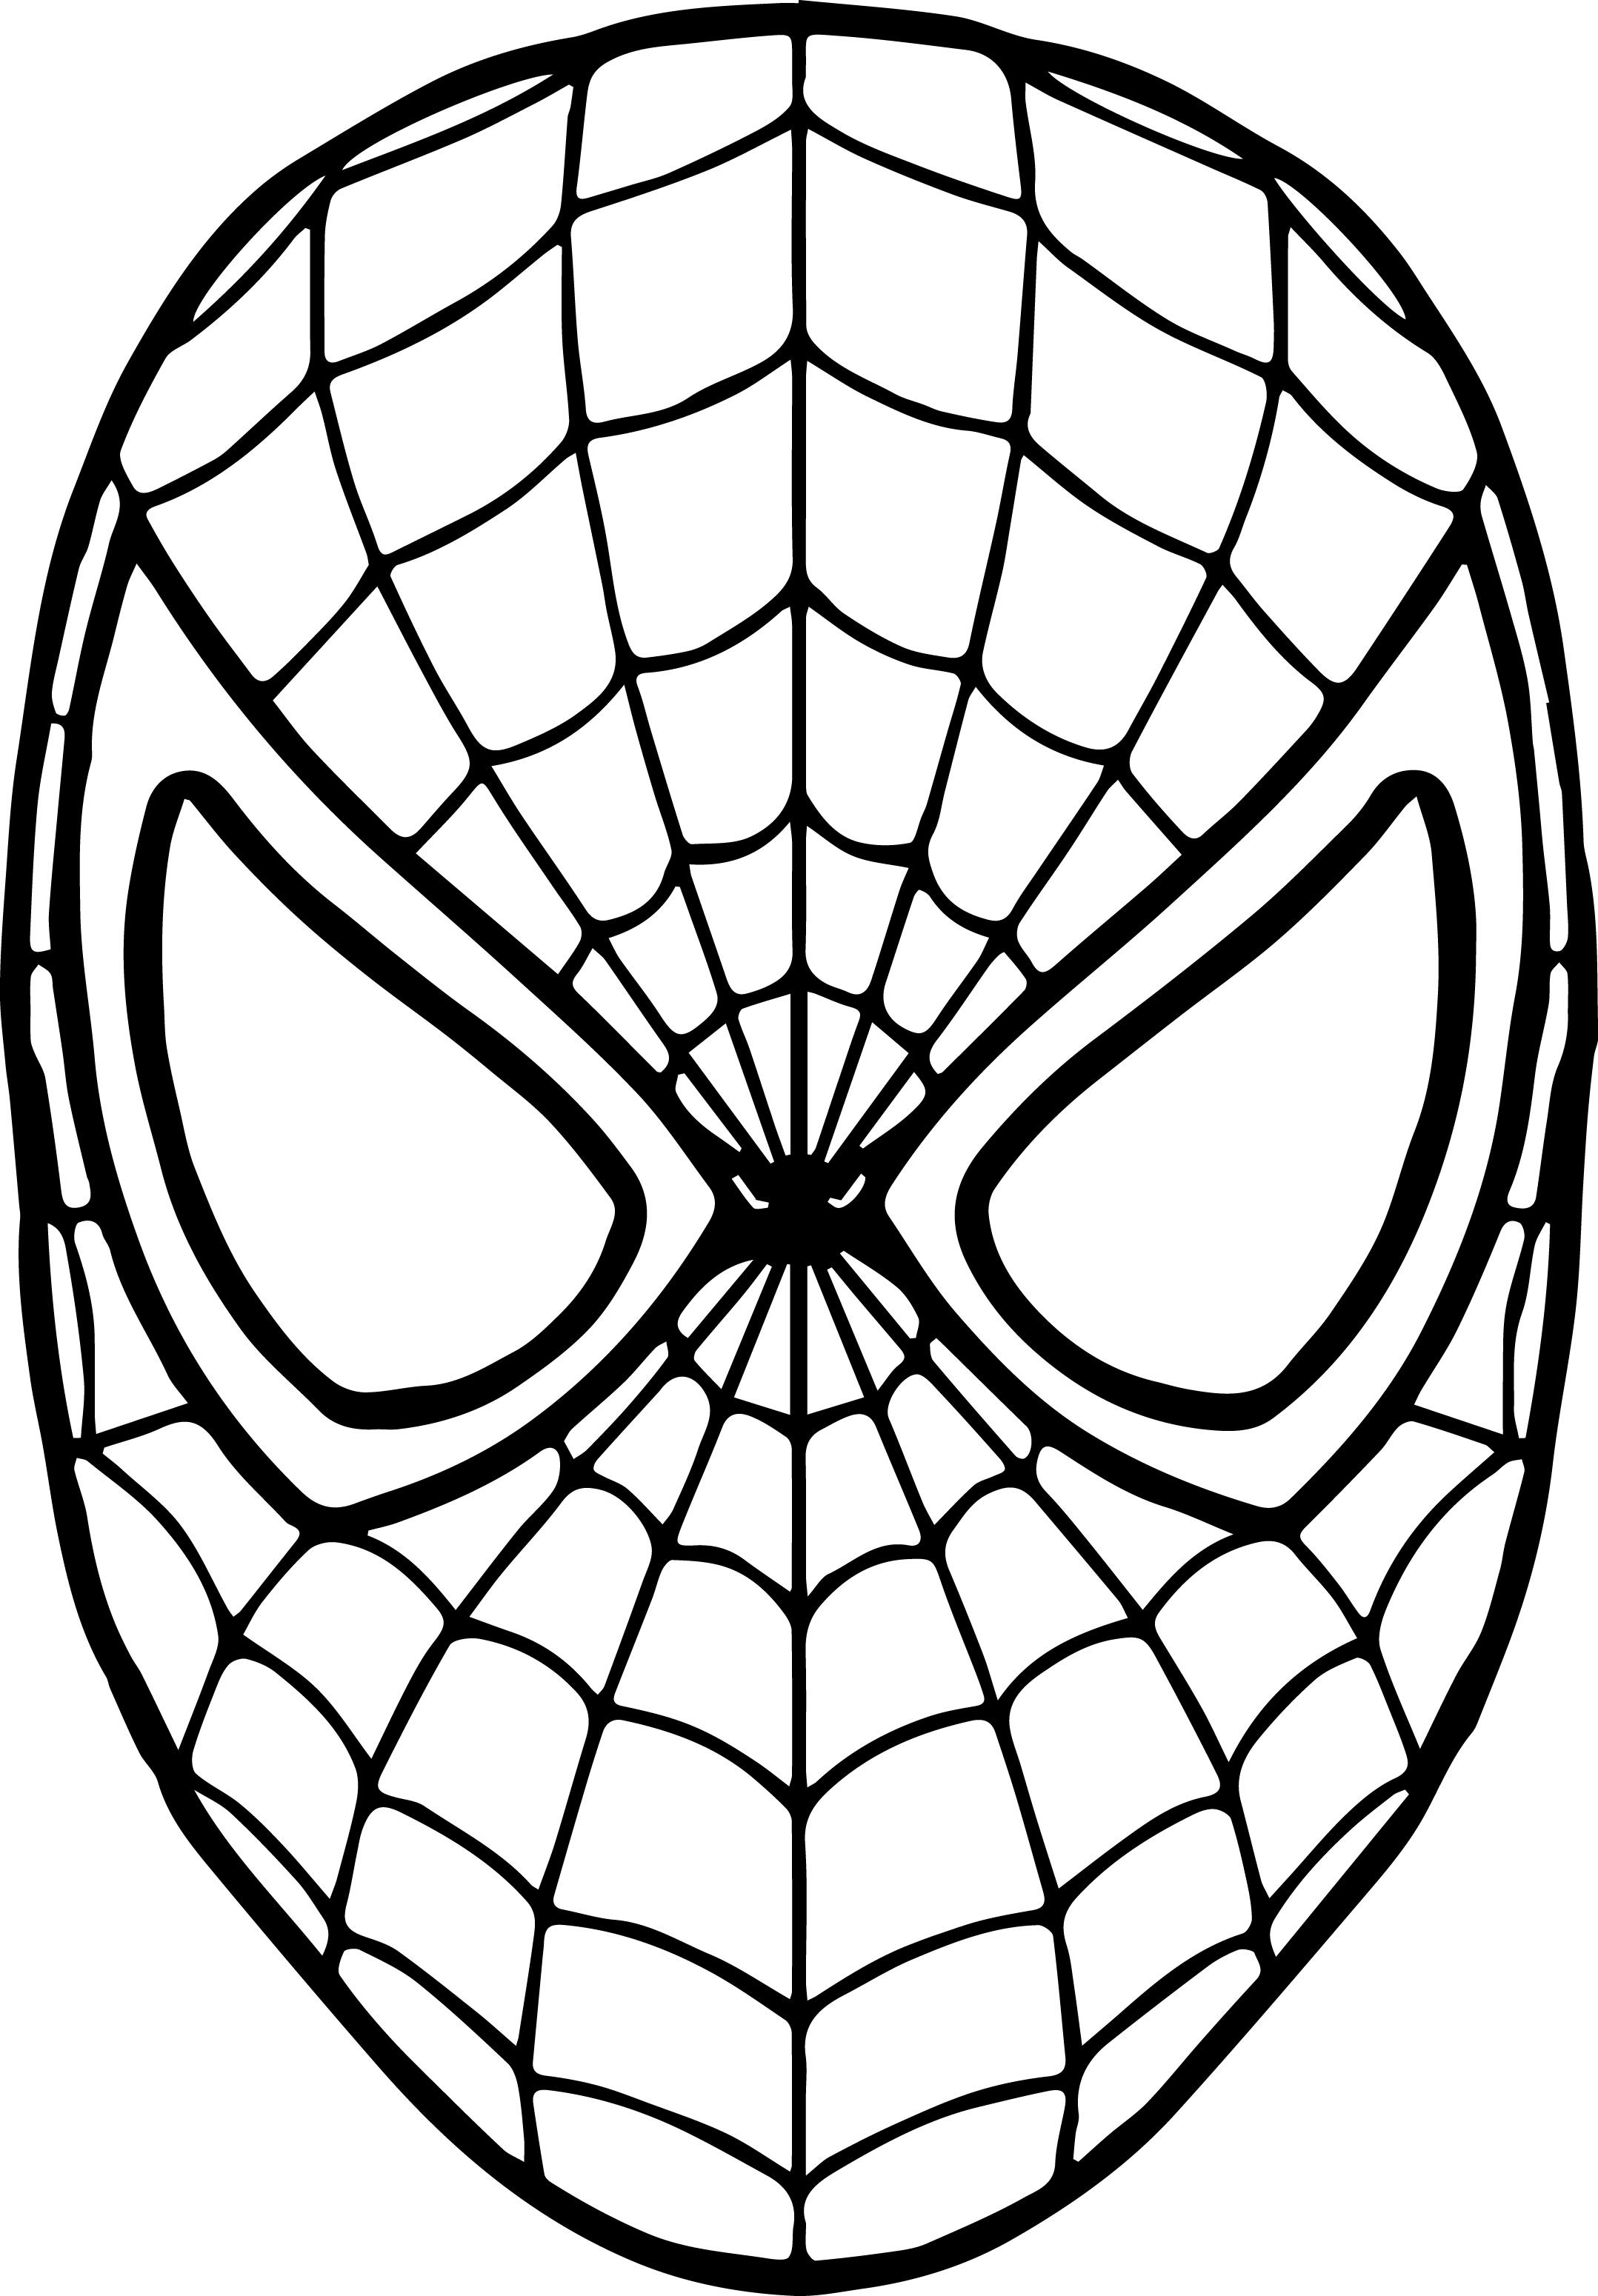 Unforgettable image within spiderman mask printable